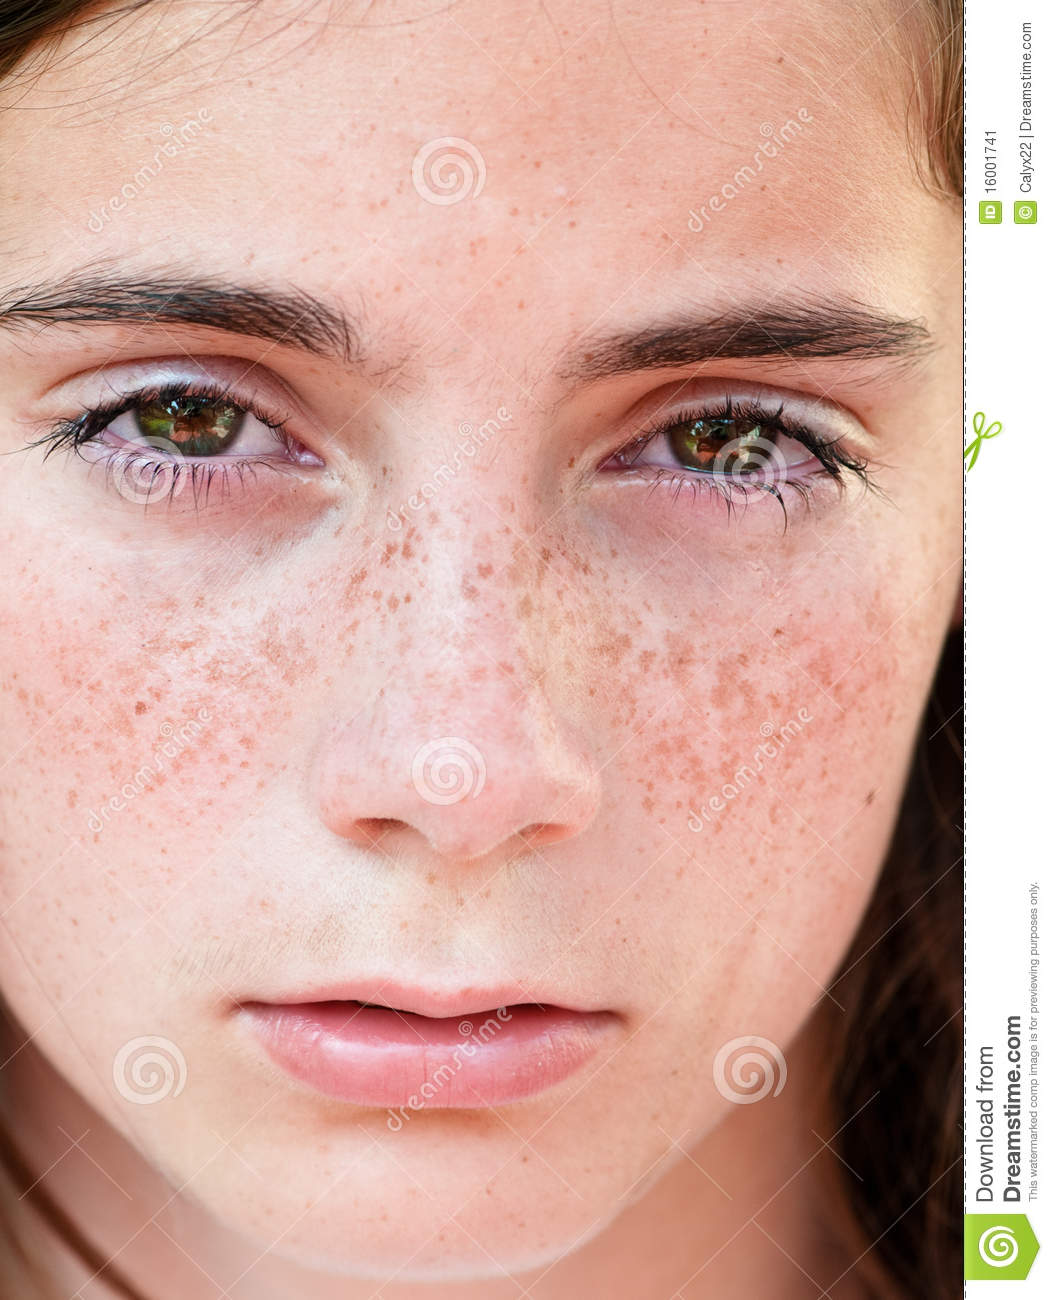 the face of sadness stock image